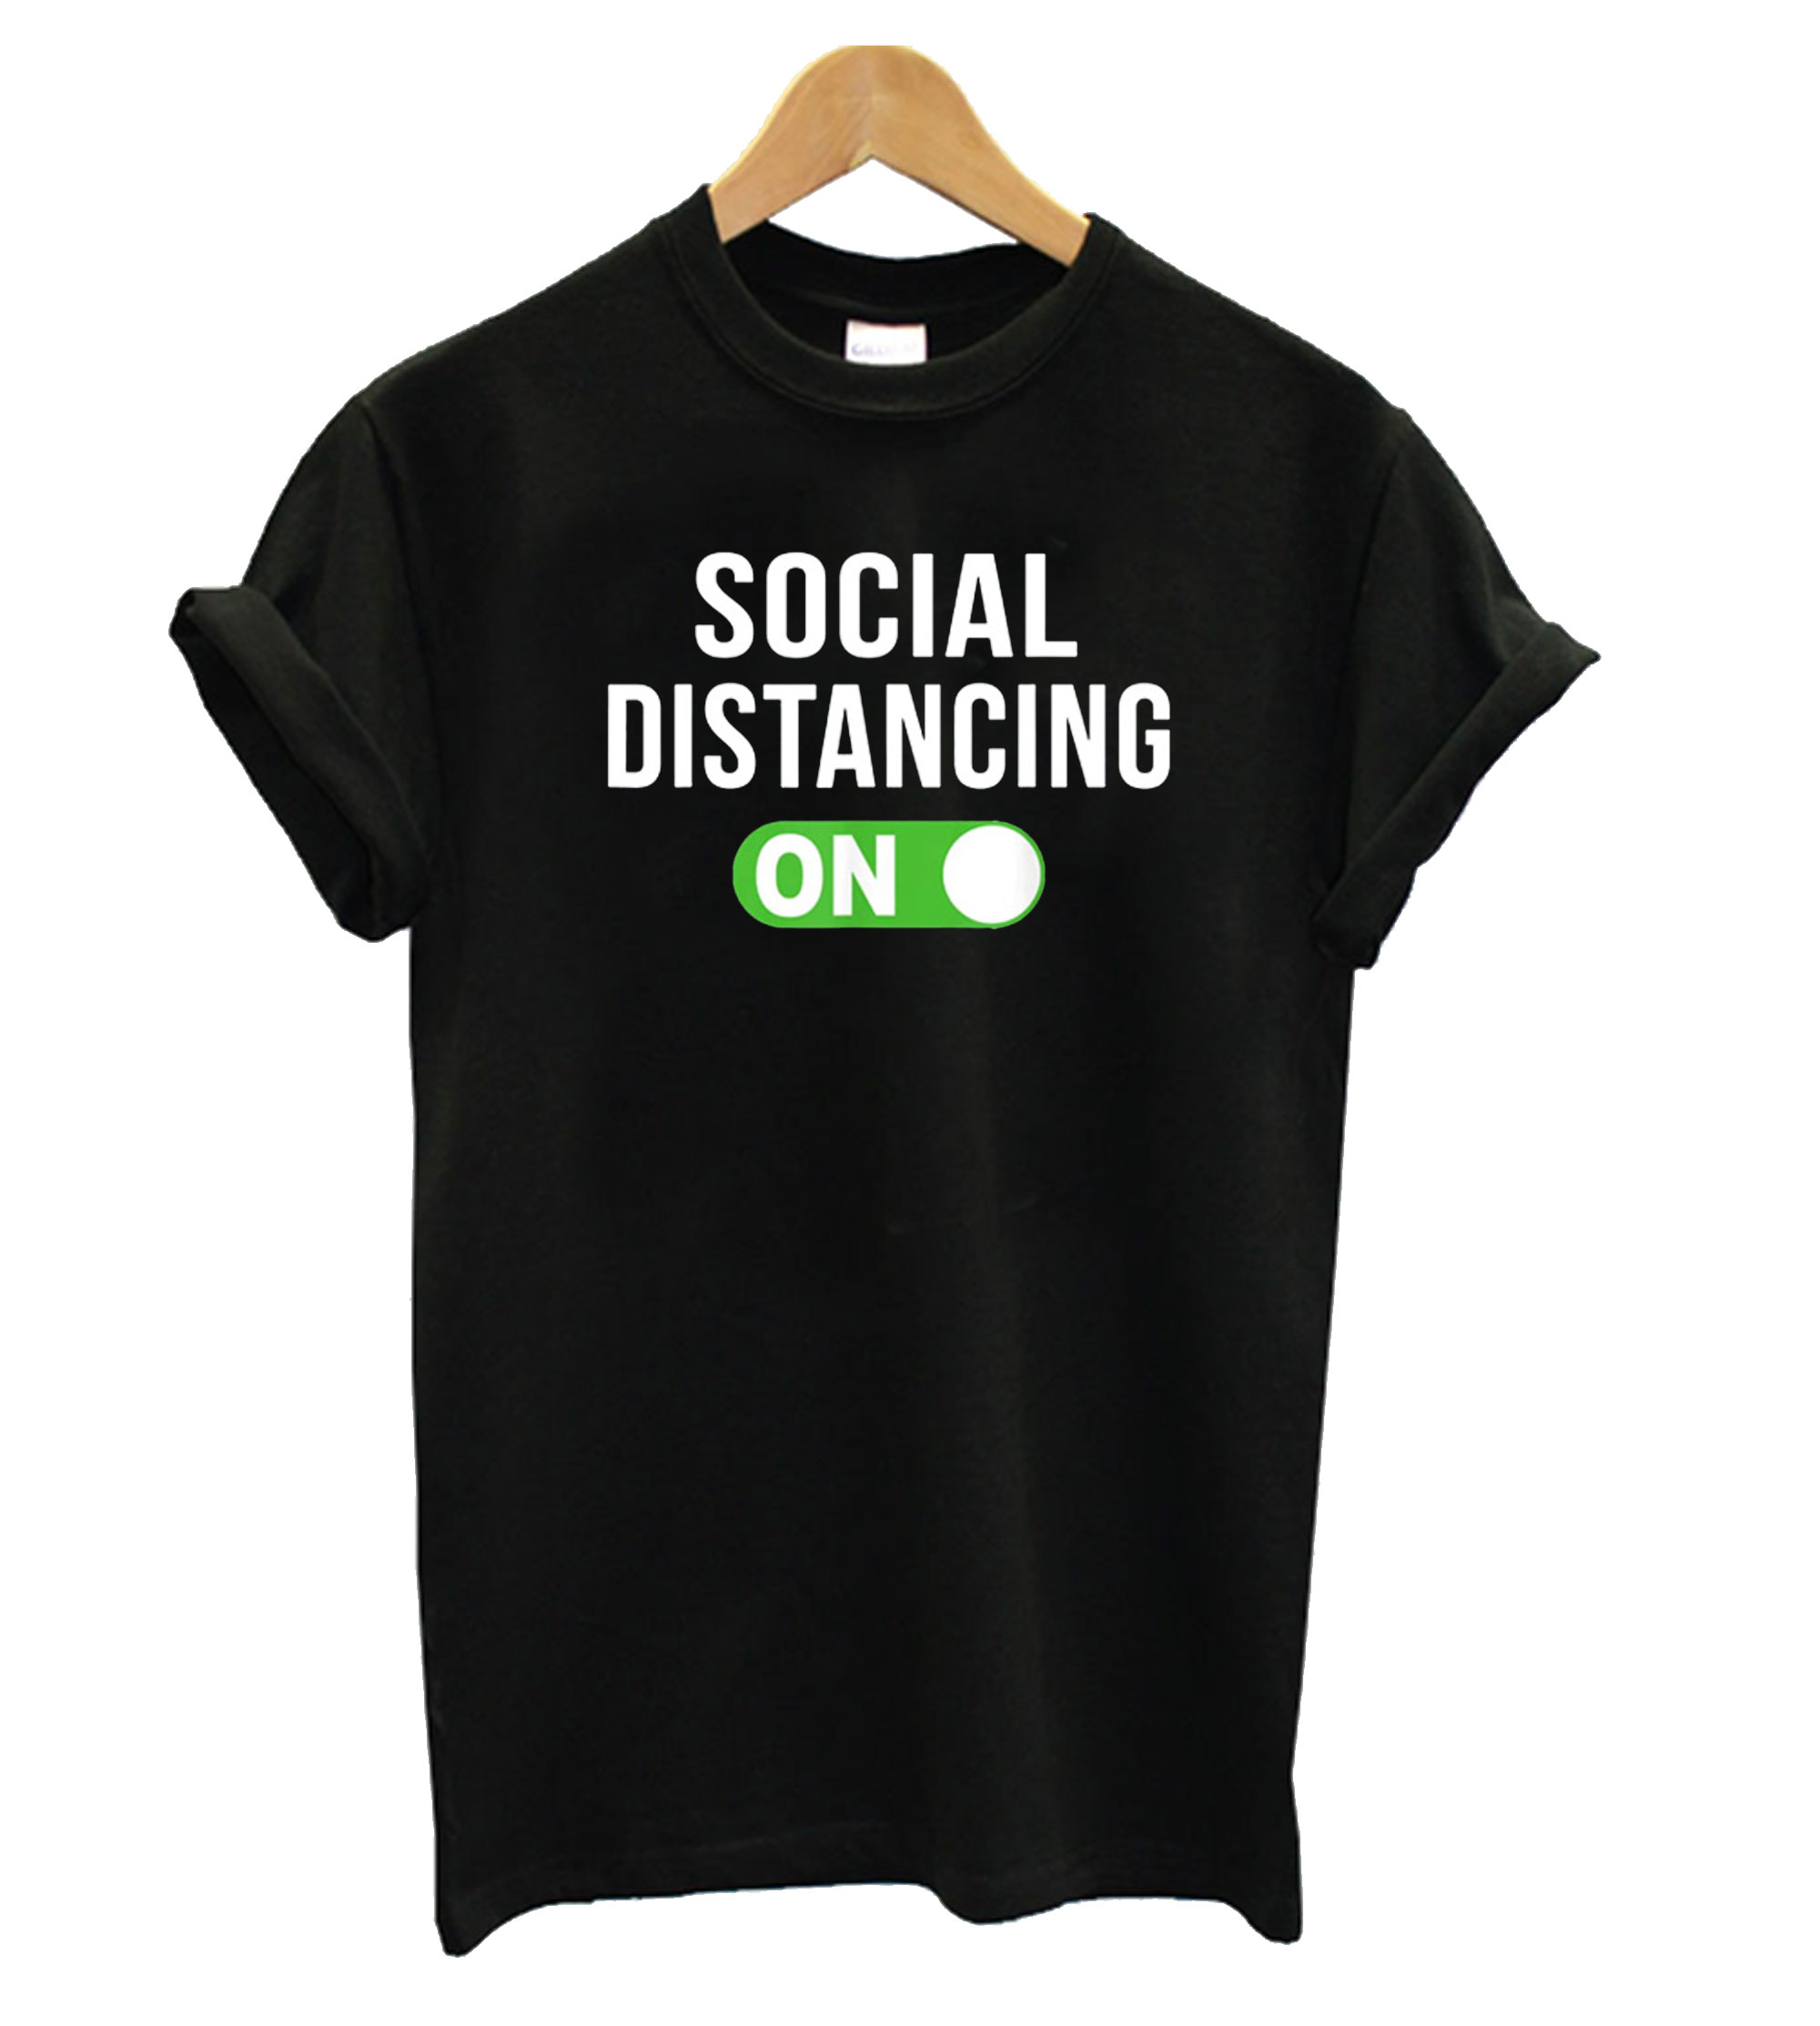 Social Distancing Mode On Social Distancing T shirt ZX03